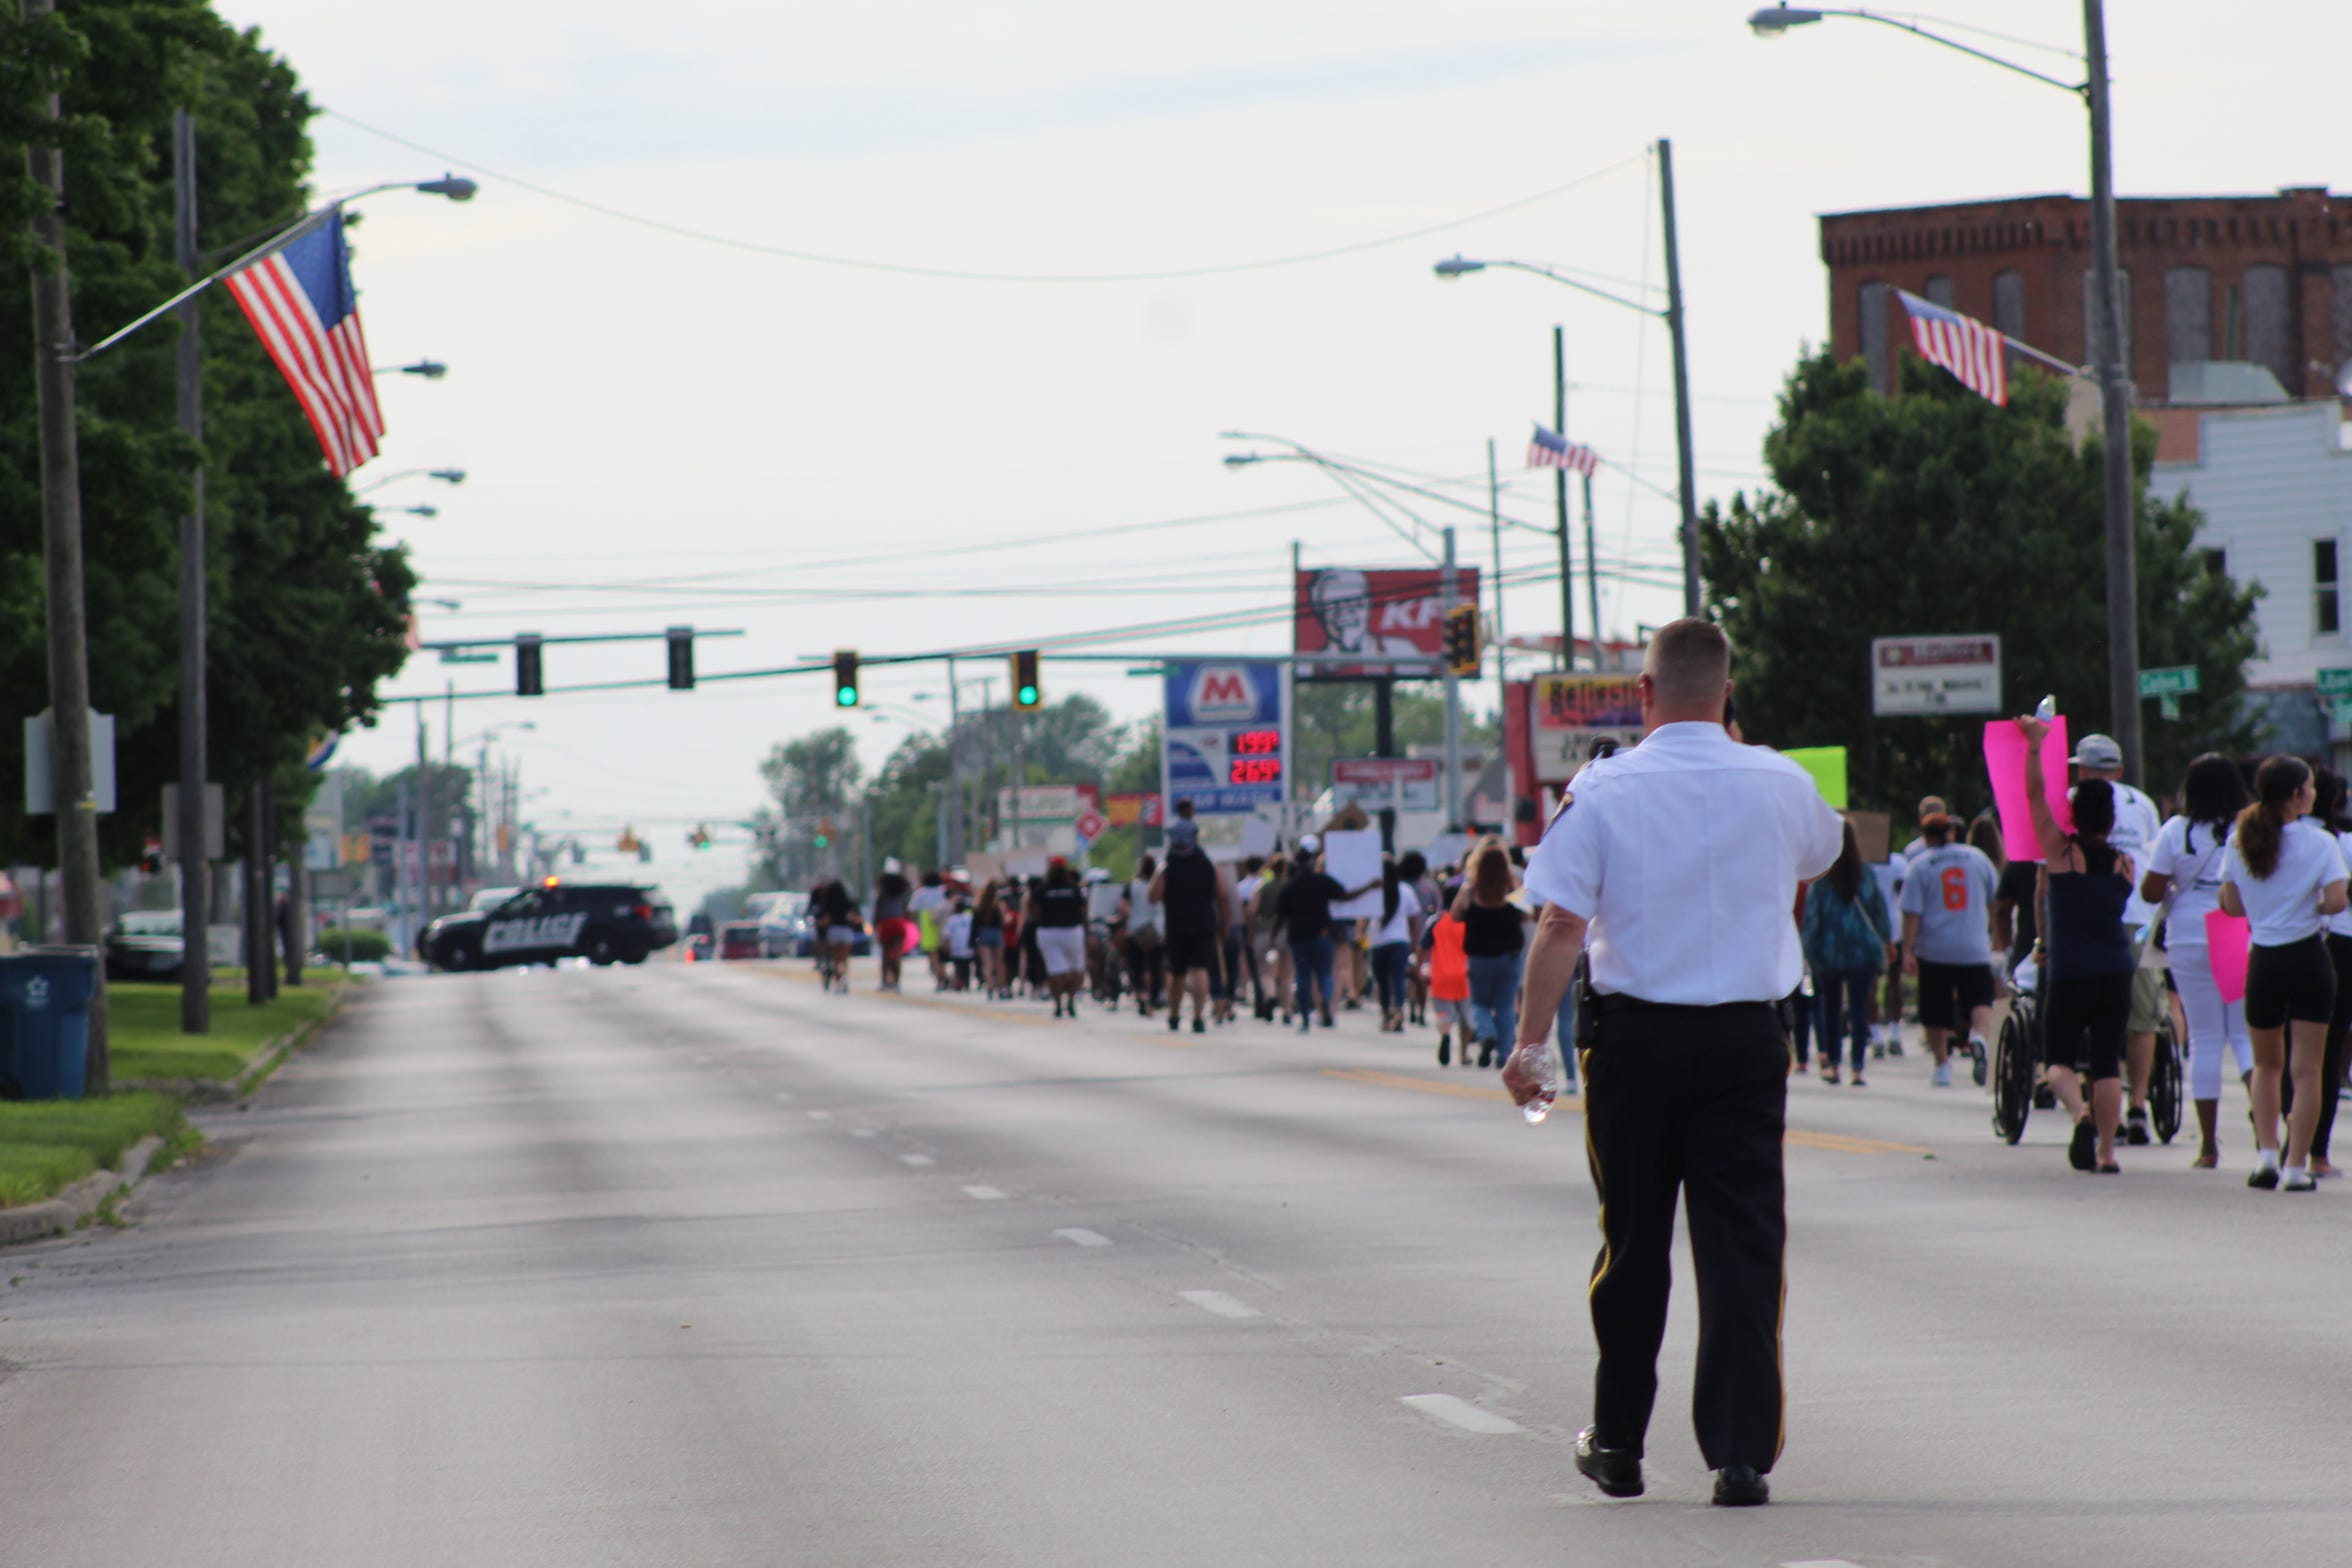 Fremont Police Chief Dean Bliss walks with hundreds of protesters on West State Street at the anti-racism vigil.